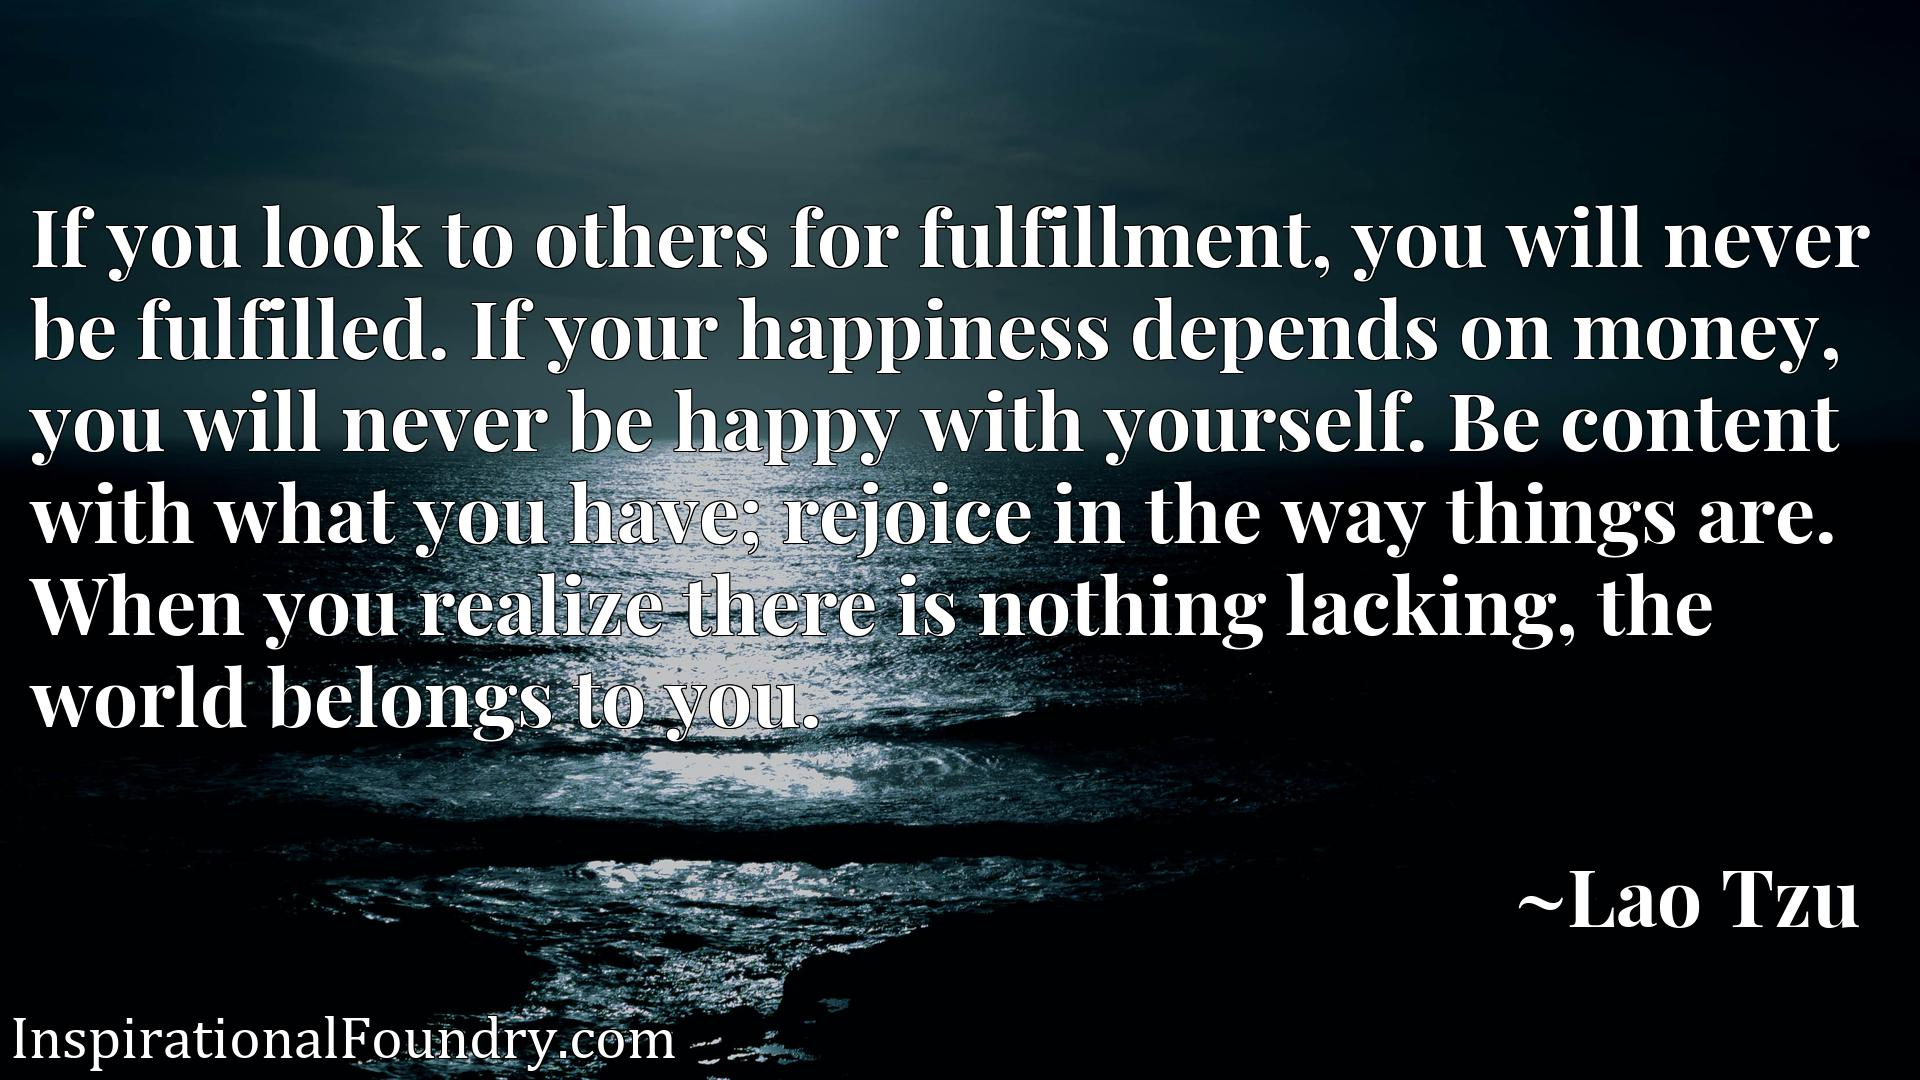 If you look to others for fulfillment, you will never be fulfilled. If your happiness depends on money, you will never be happy with yourself. Be content with what you have; rejoice in the way things are. When you realize there is nothing lacking, the world belongs to you.